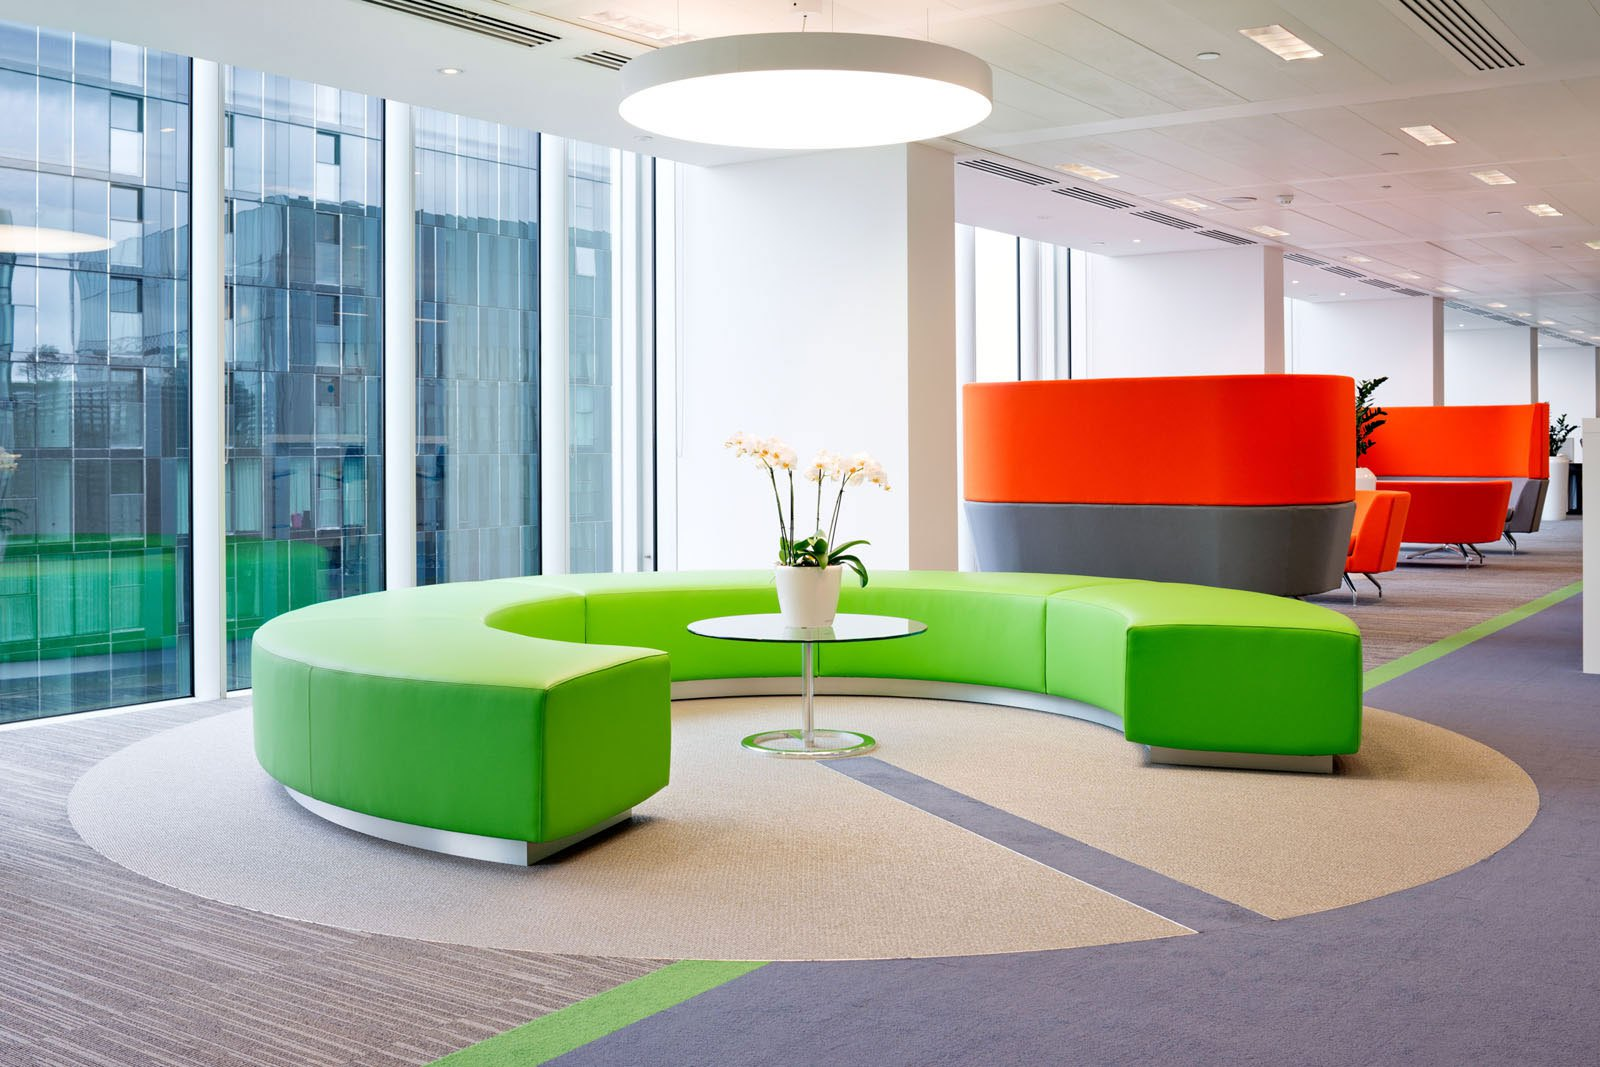 Demandware-london-office-3